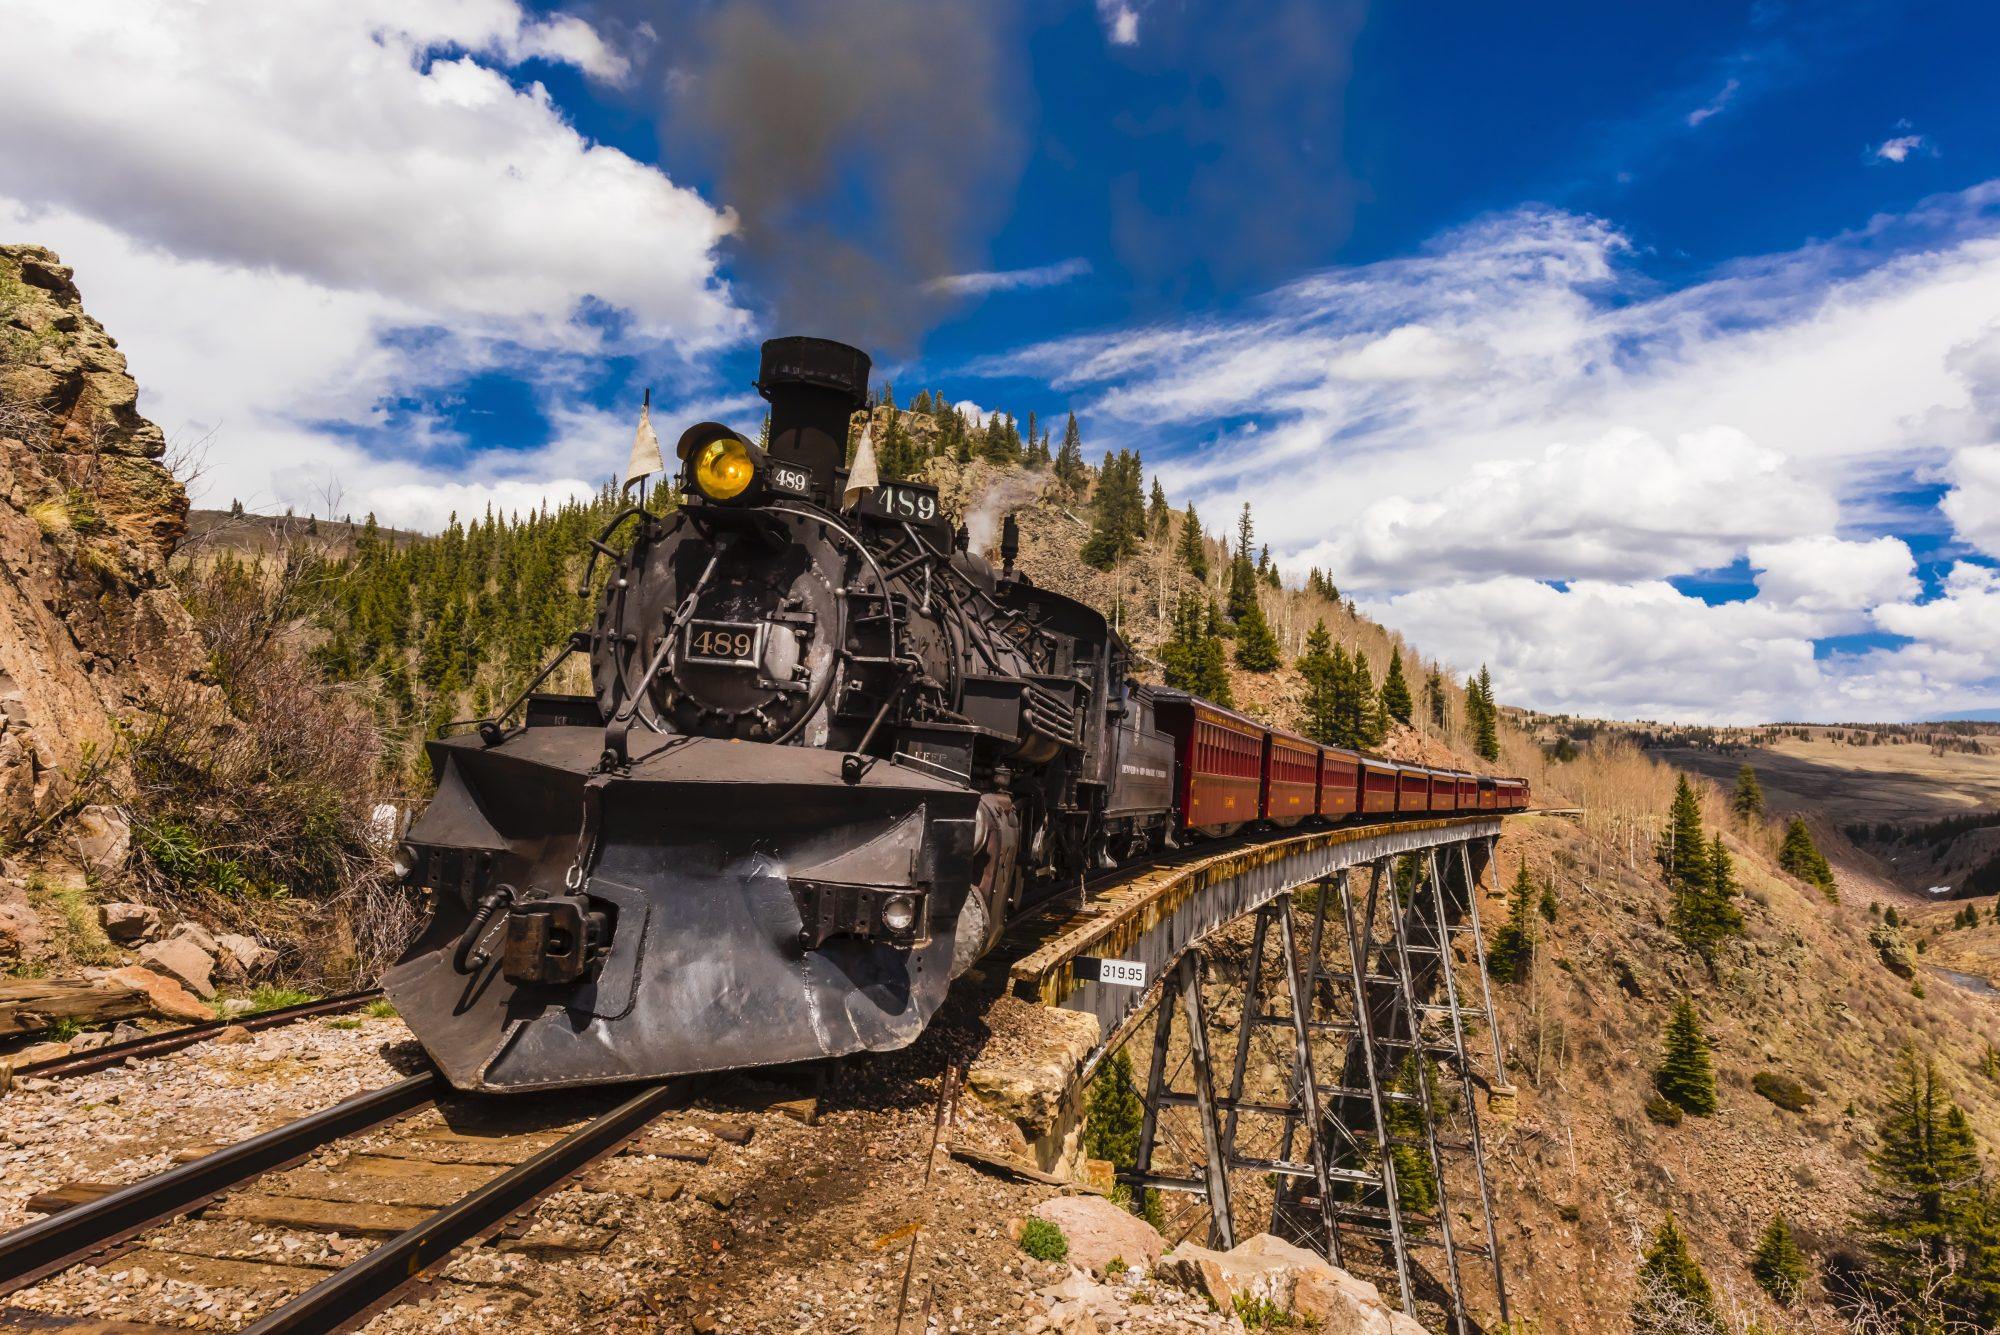 the Cumbres and Toltec Scenic Railroad train pulled by a steam locomotive crosses the Cascade Trestle